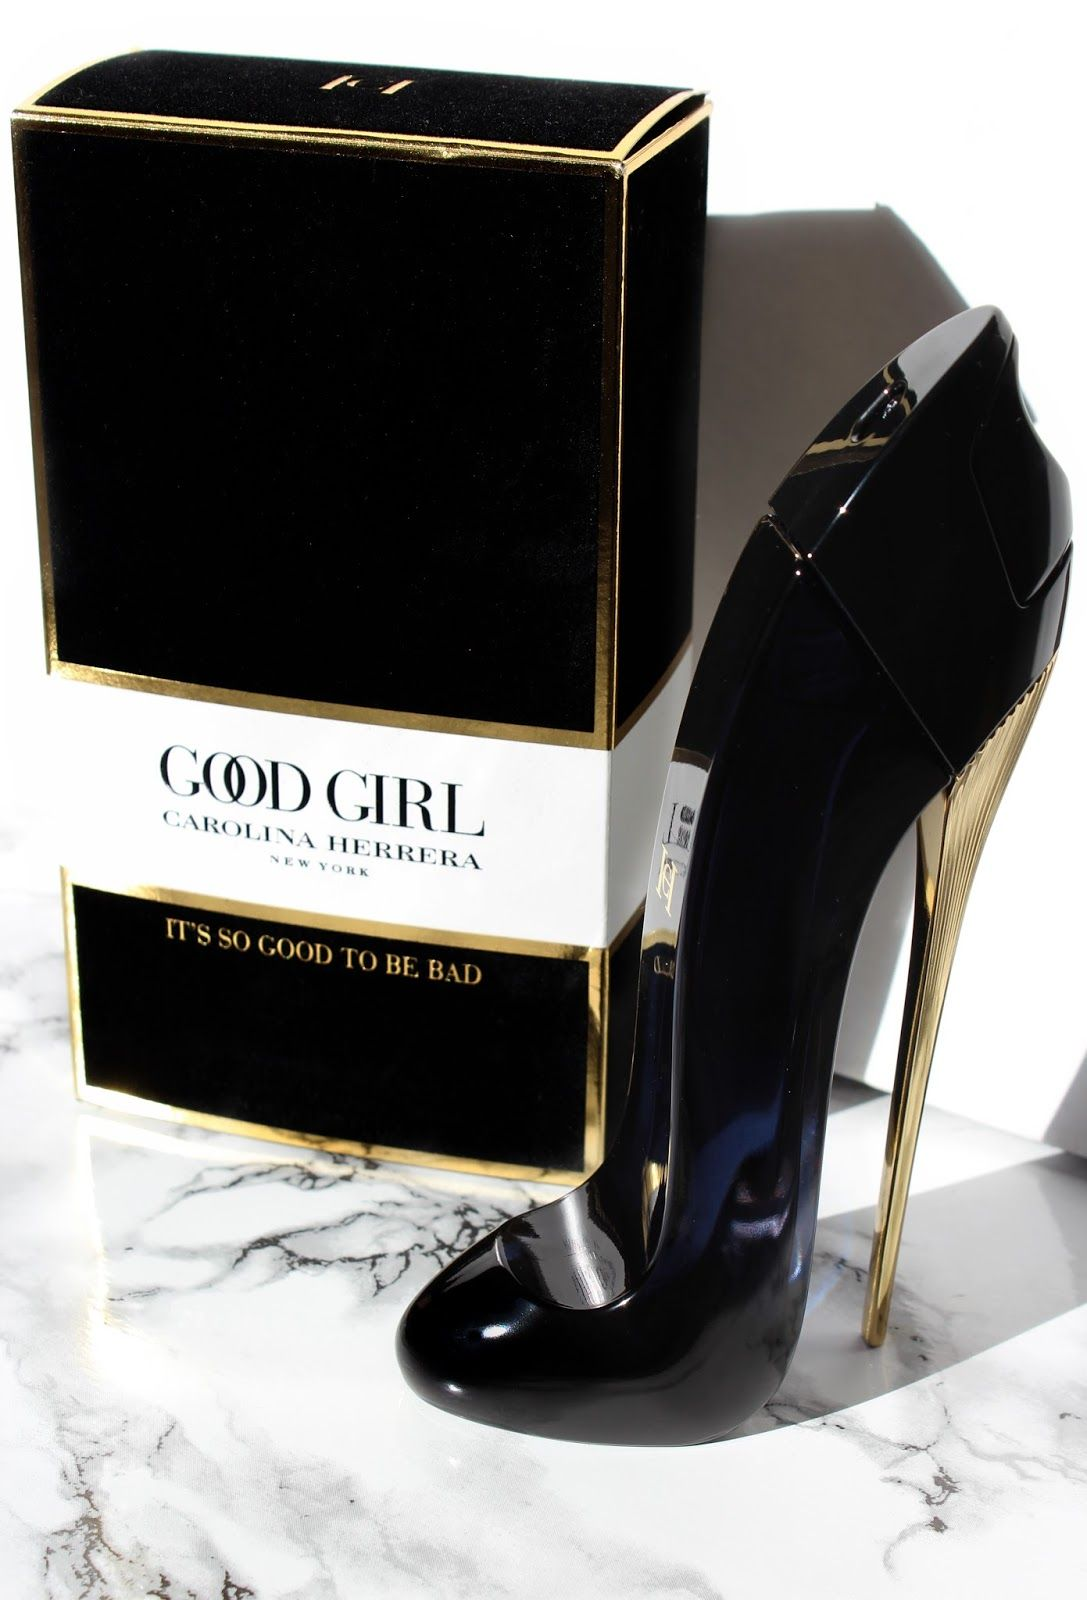 Carolina Herrera Good Girl Eau De Parfum Things I Love In 2019